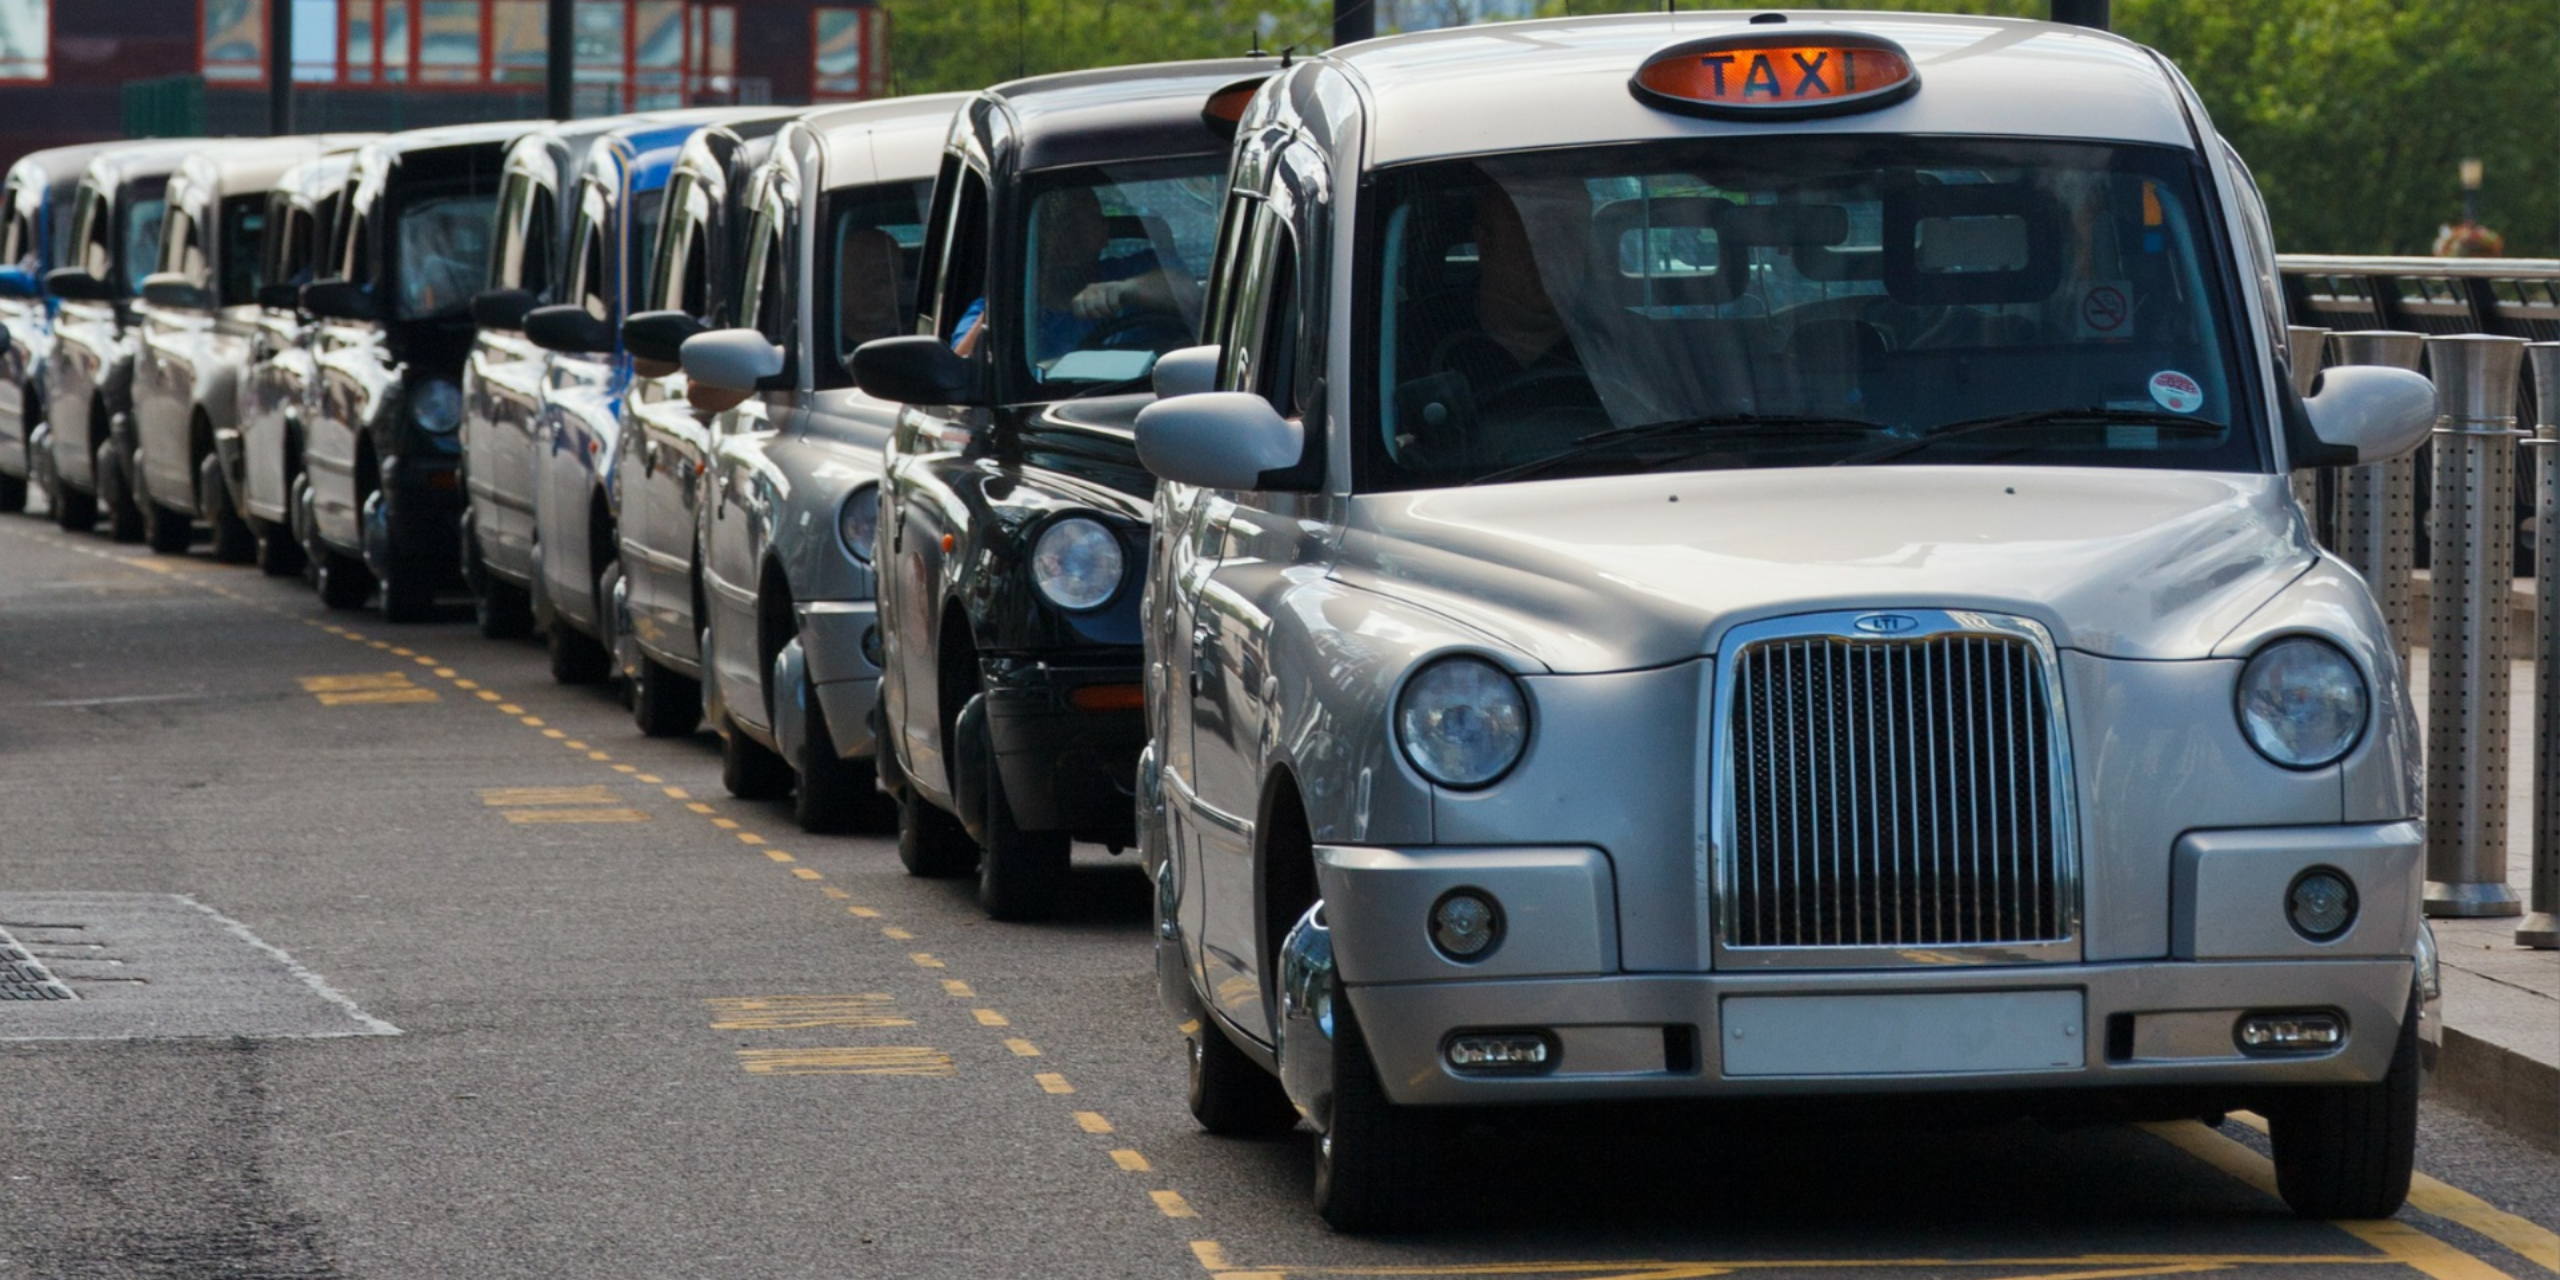 Taxis and private hire